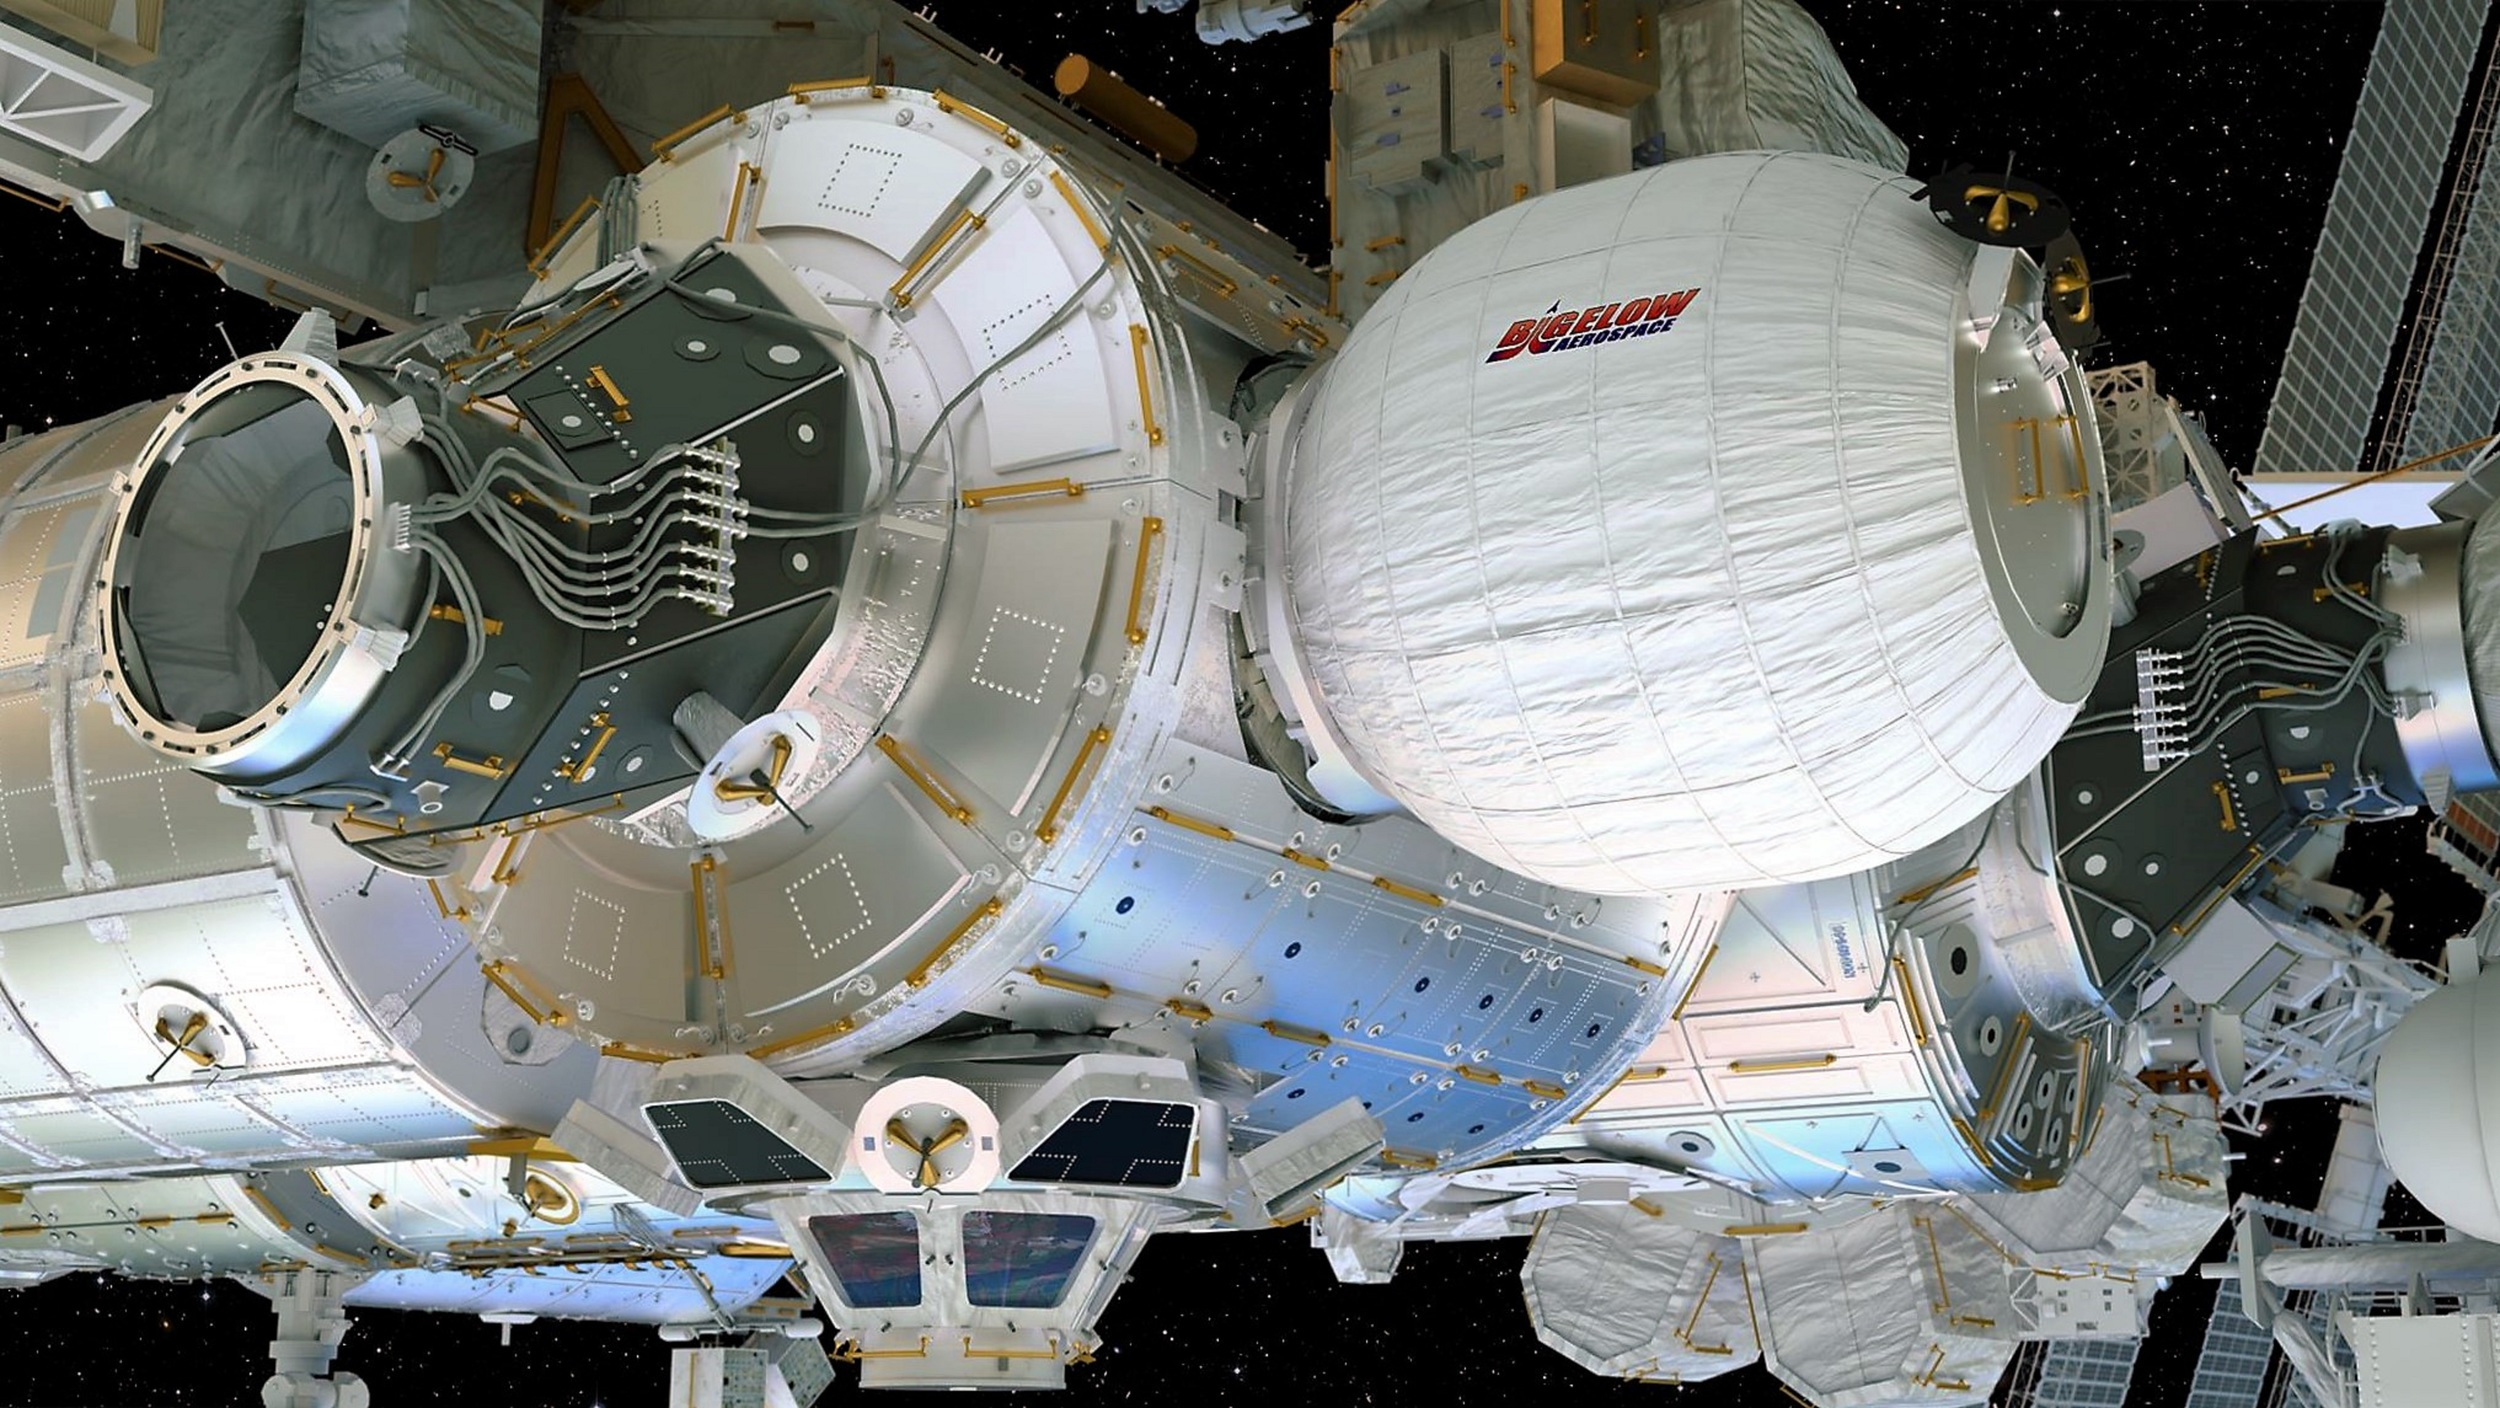 This artist's concept depicts the Bigelow Expandable Activity Module attached to the International Space Station's Tranquility module. – Image Credits: Bigelow Aerospace